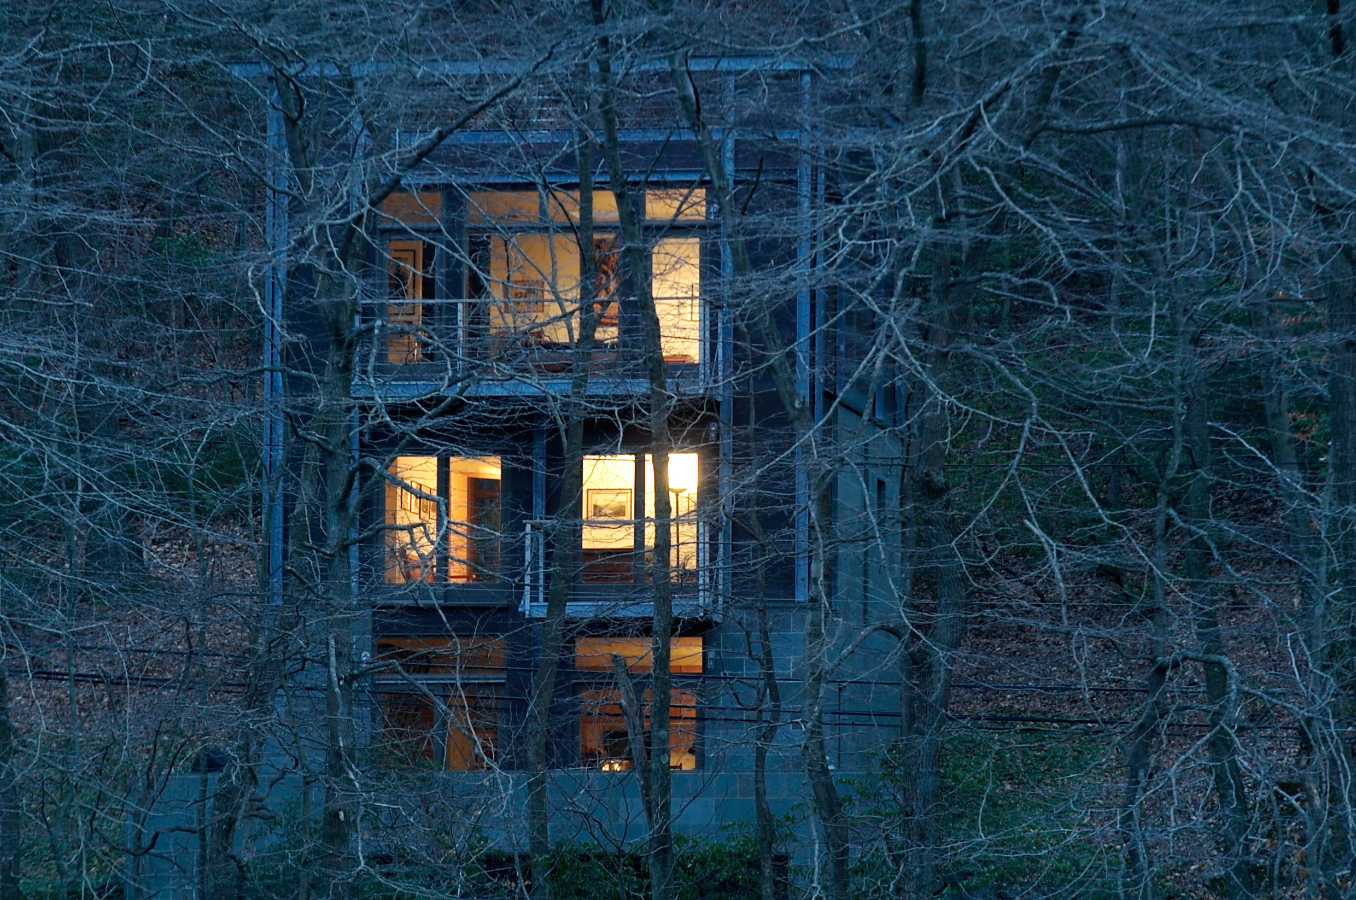 Tree House  / Cold Spring Harbor, NY